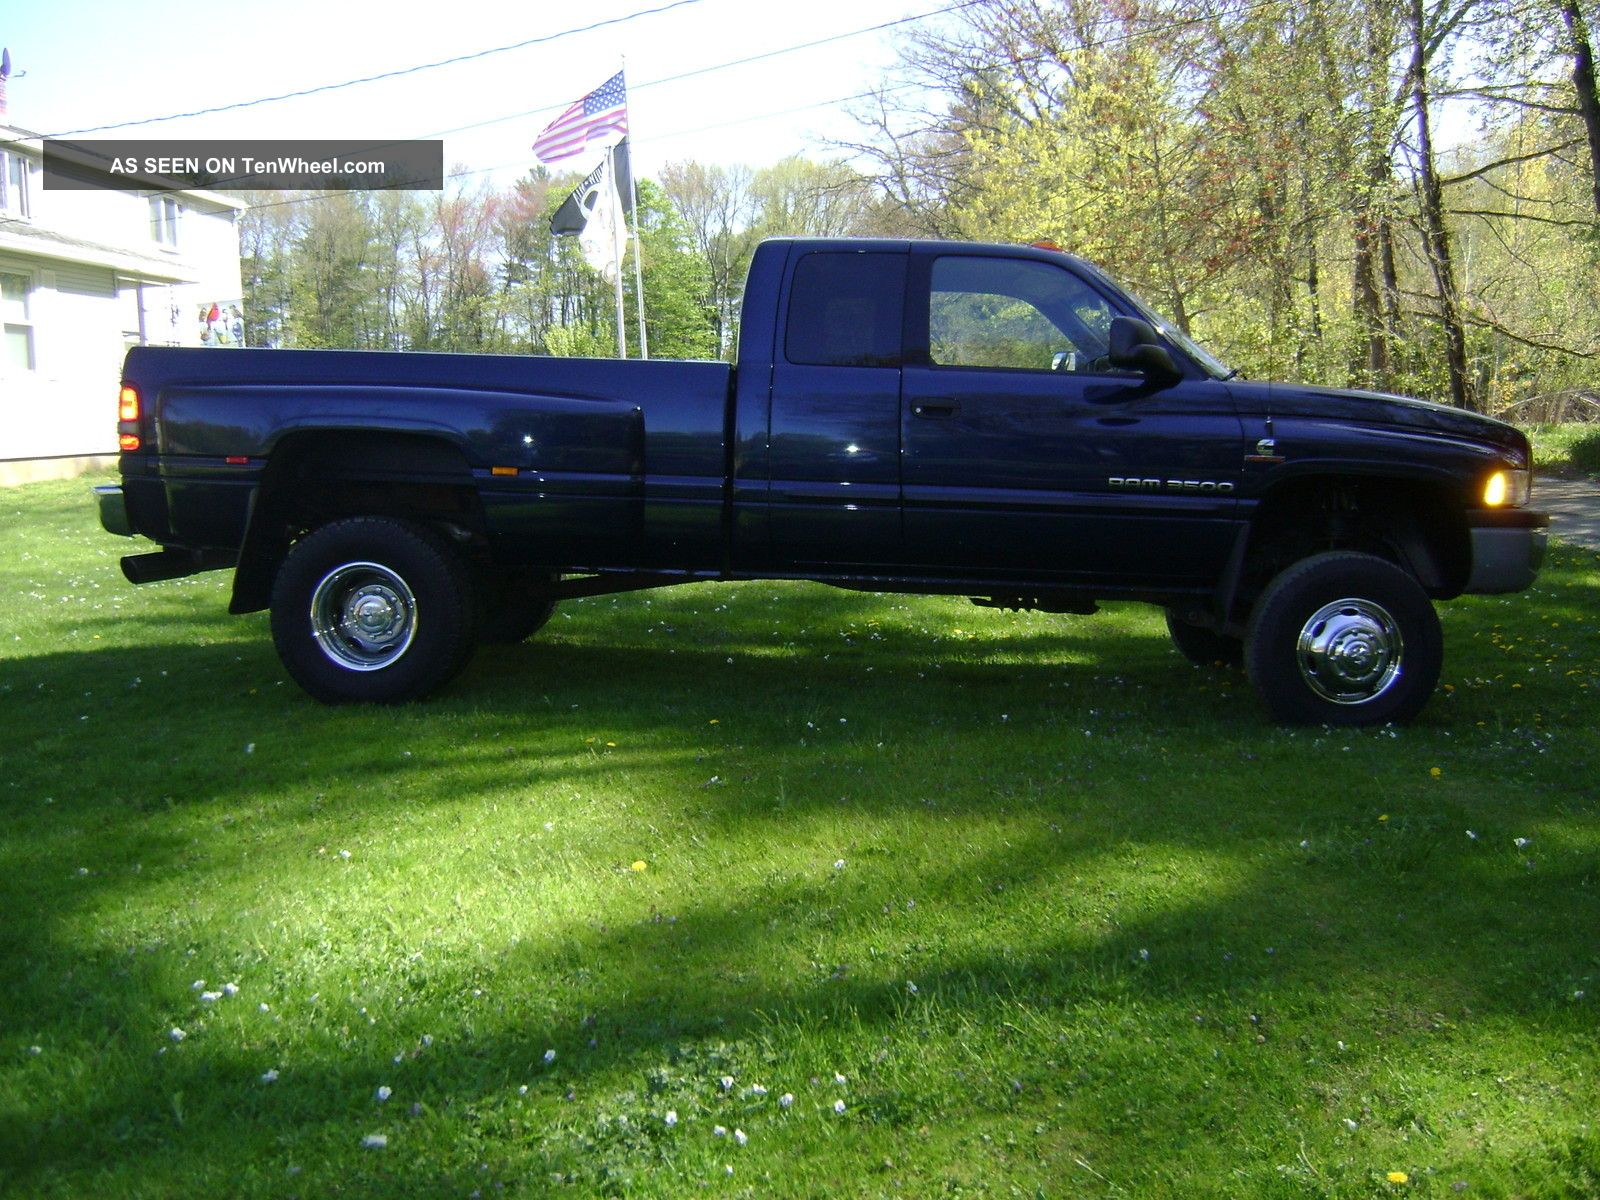 2001 Dodge Ram 3500 Dually Quad Cab 5 9l Cummins Diesel 4x4 6spd Extended